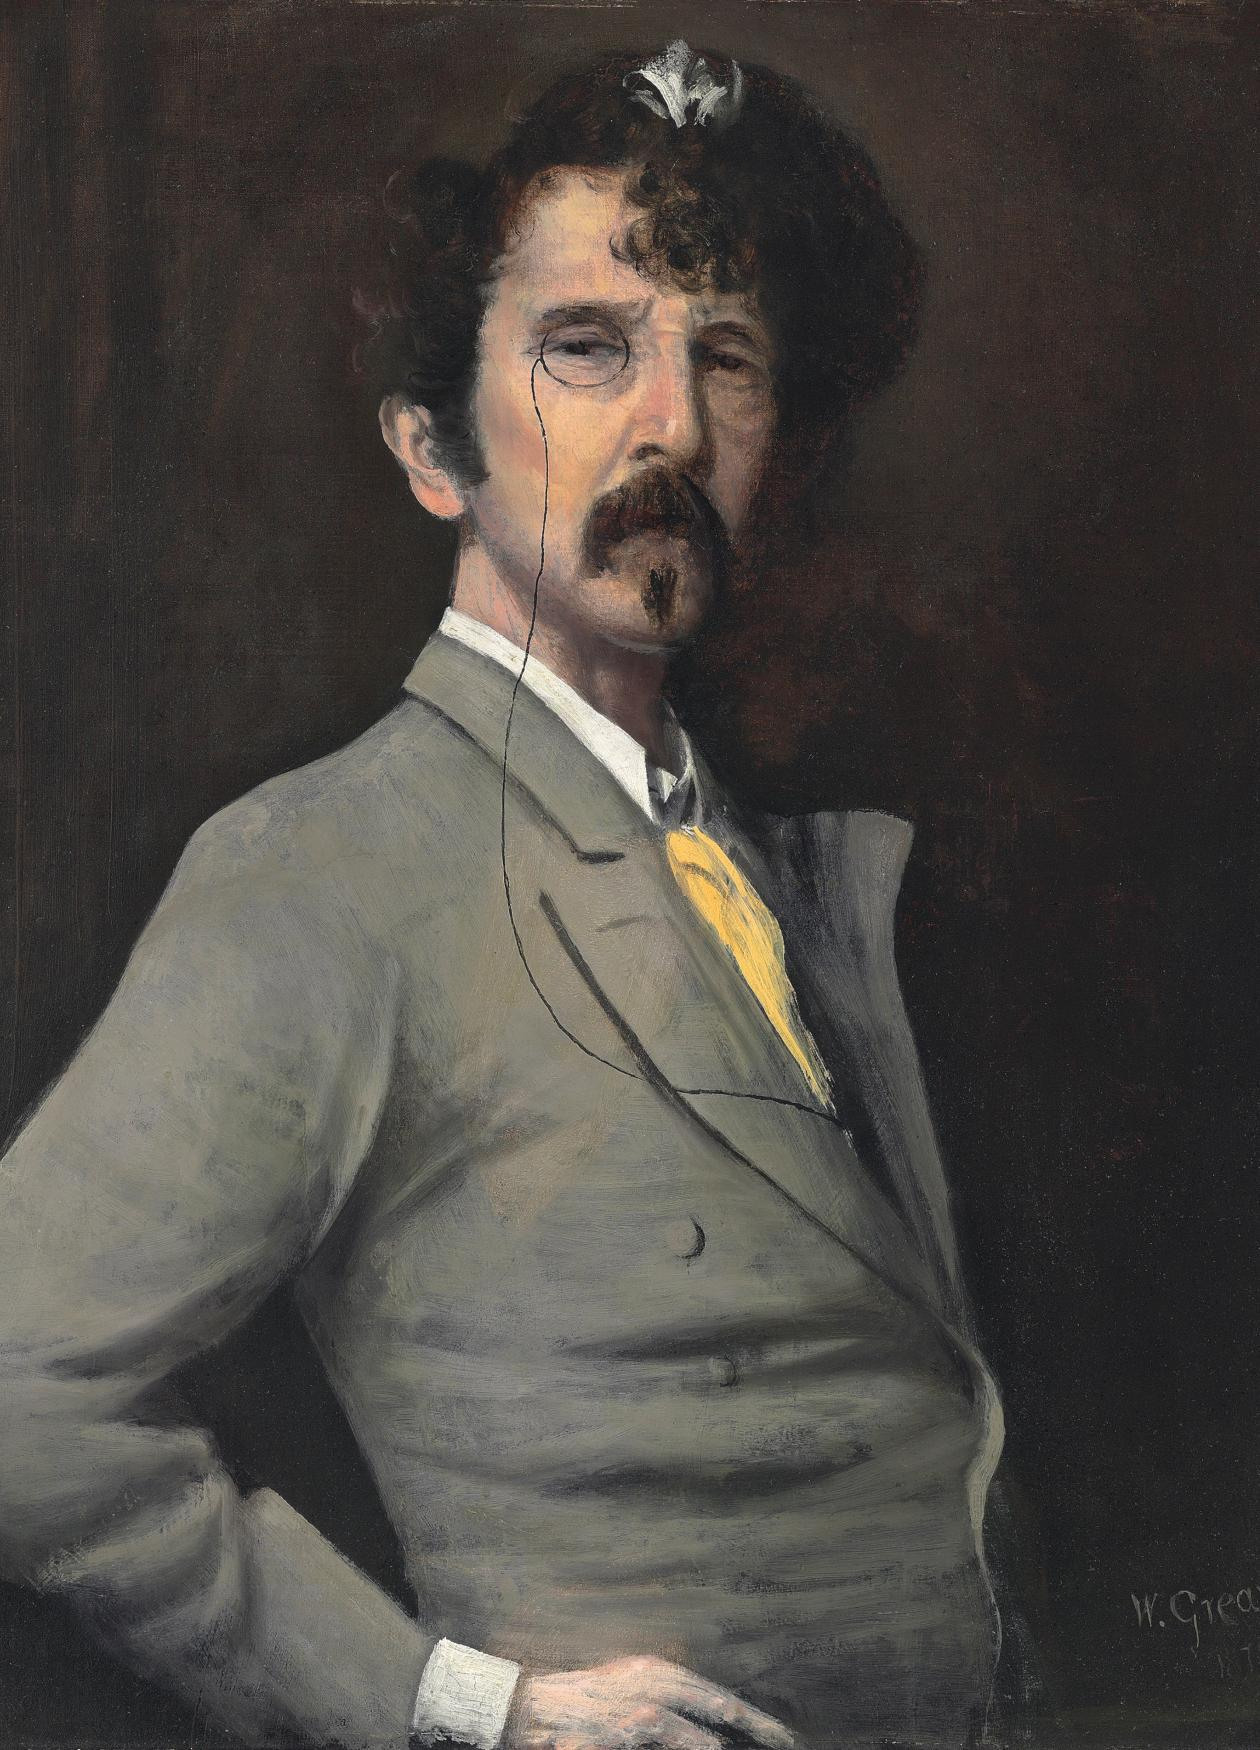 James Abbott McNeill Whistler in a grey suit and yellow tie, hand on his hip